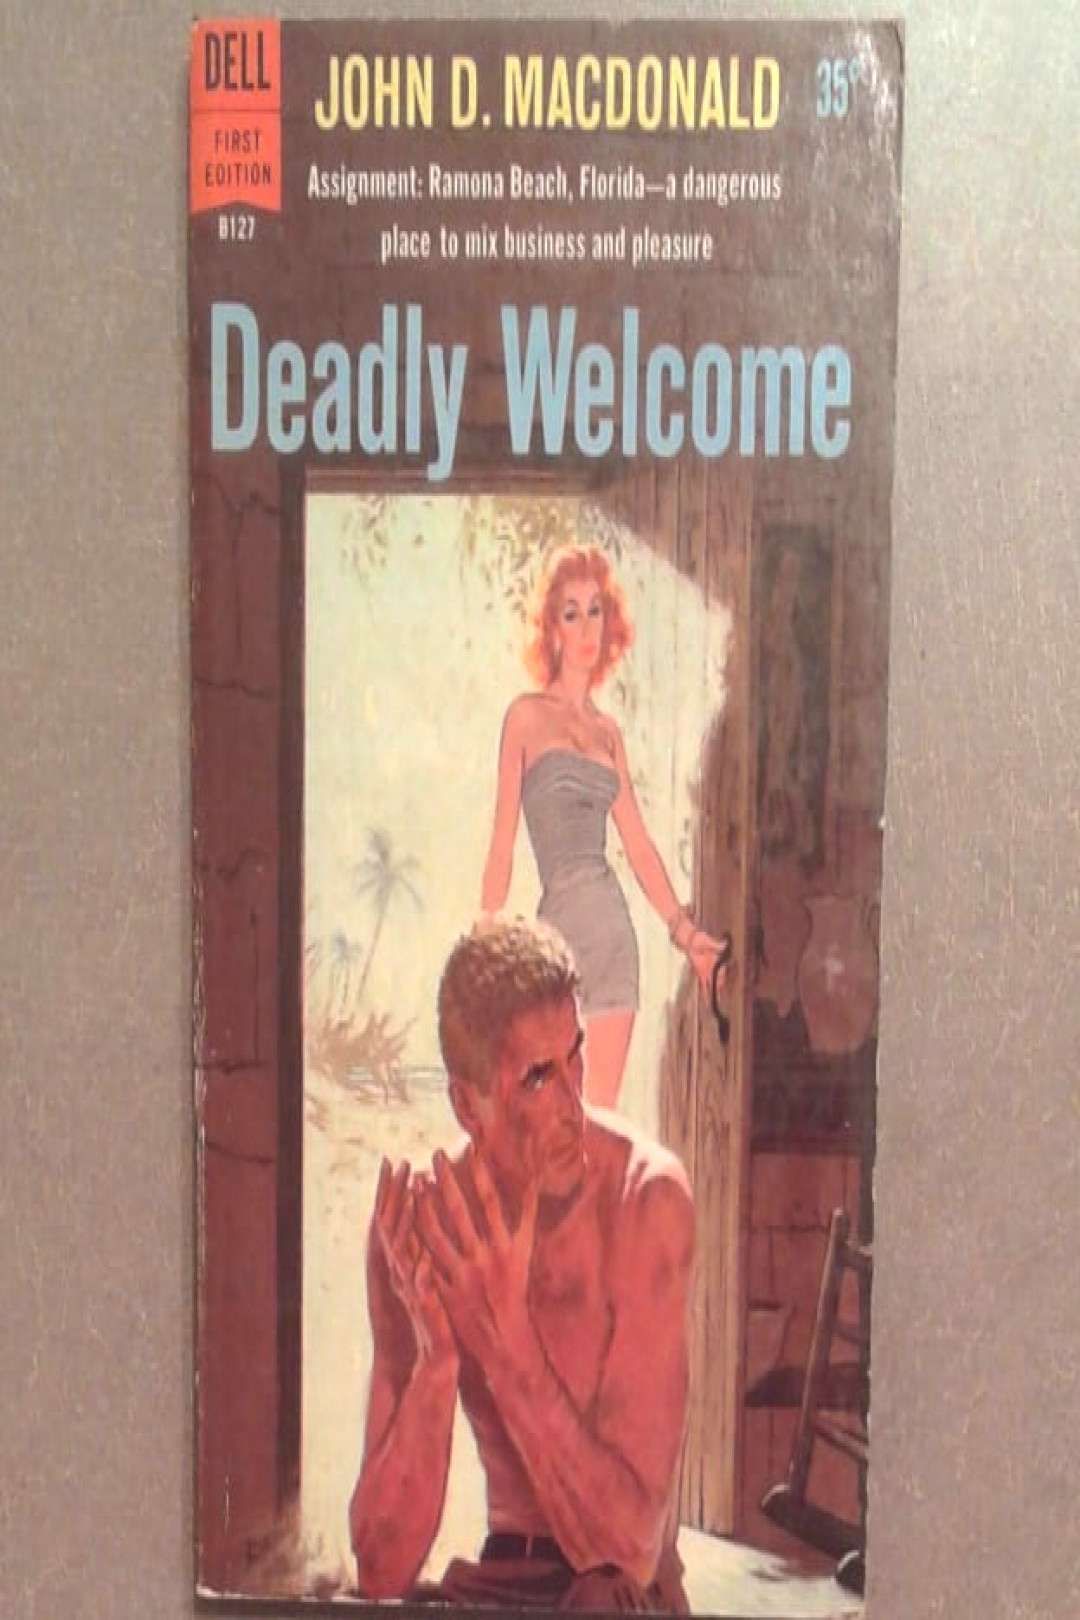 Deadly Welcome 1959  John D MacDonald Dell First Edition B12You can find Robert mcginnis and more on our websiteDeadly Welcome 1959  John D